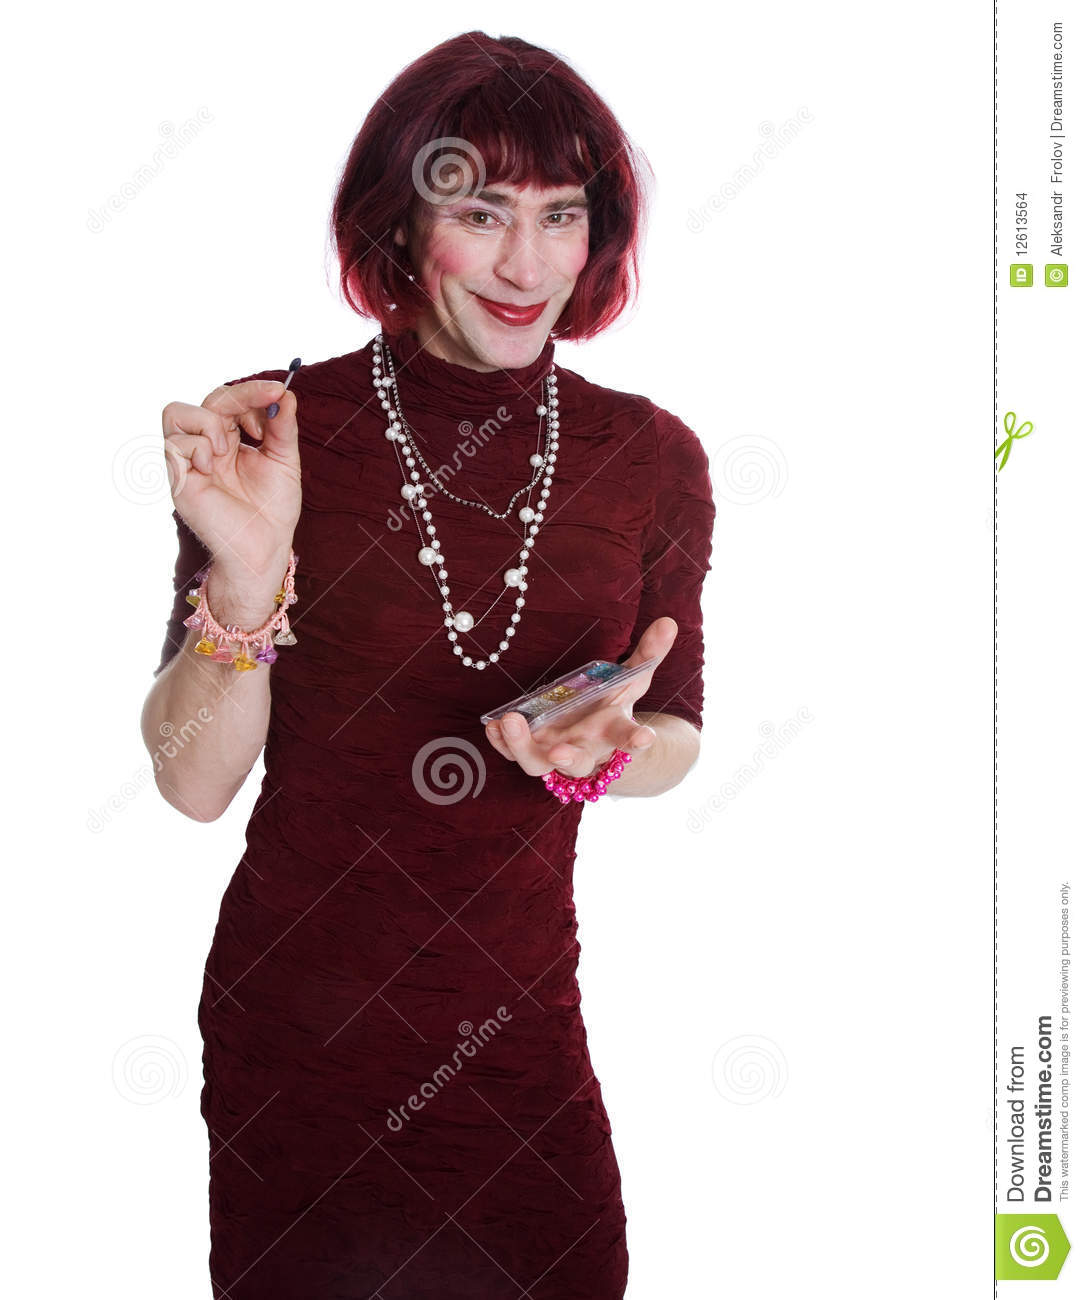 Men dressed as women pictures